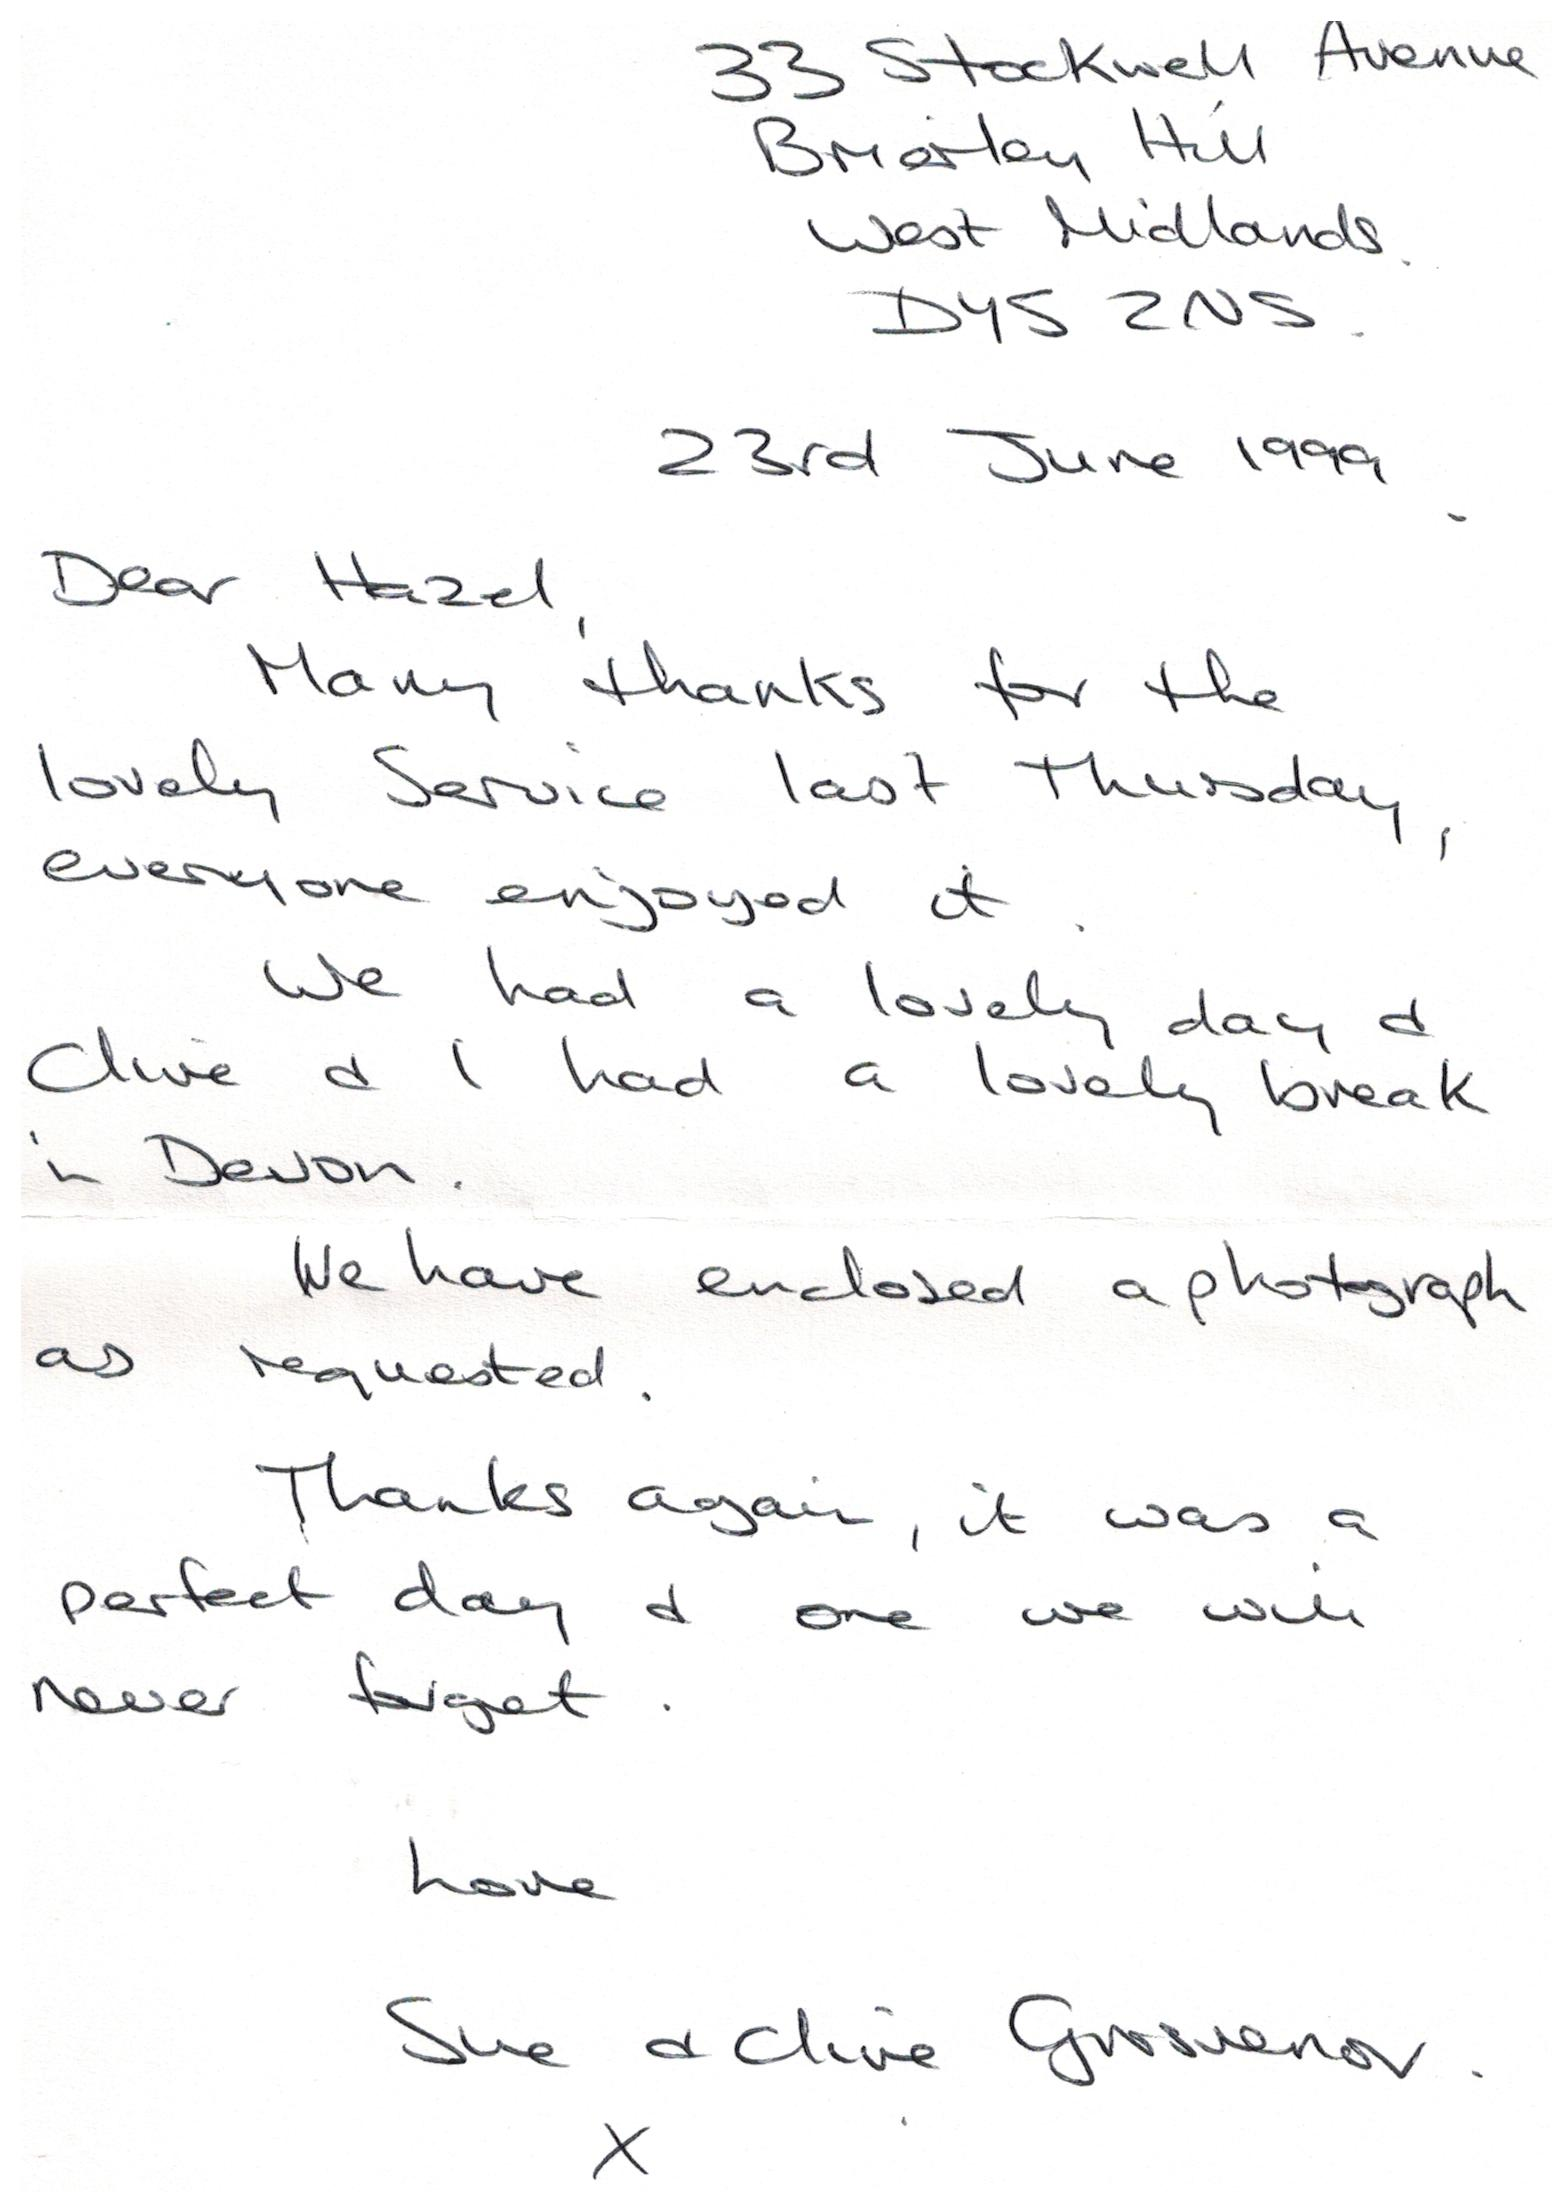 D031 Letter_Sue-and-Chris_GROSVENOR[23-06-99]